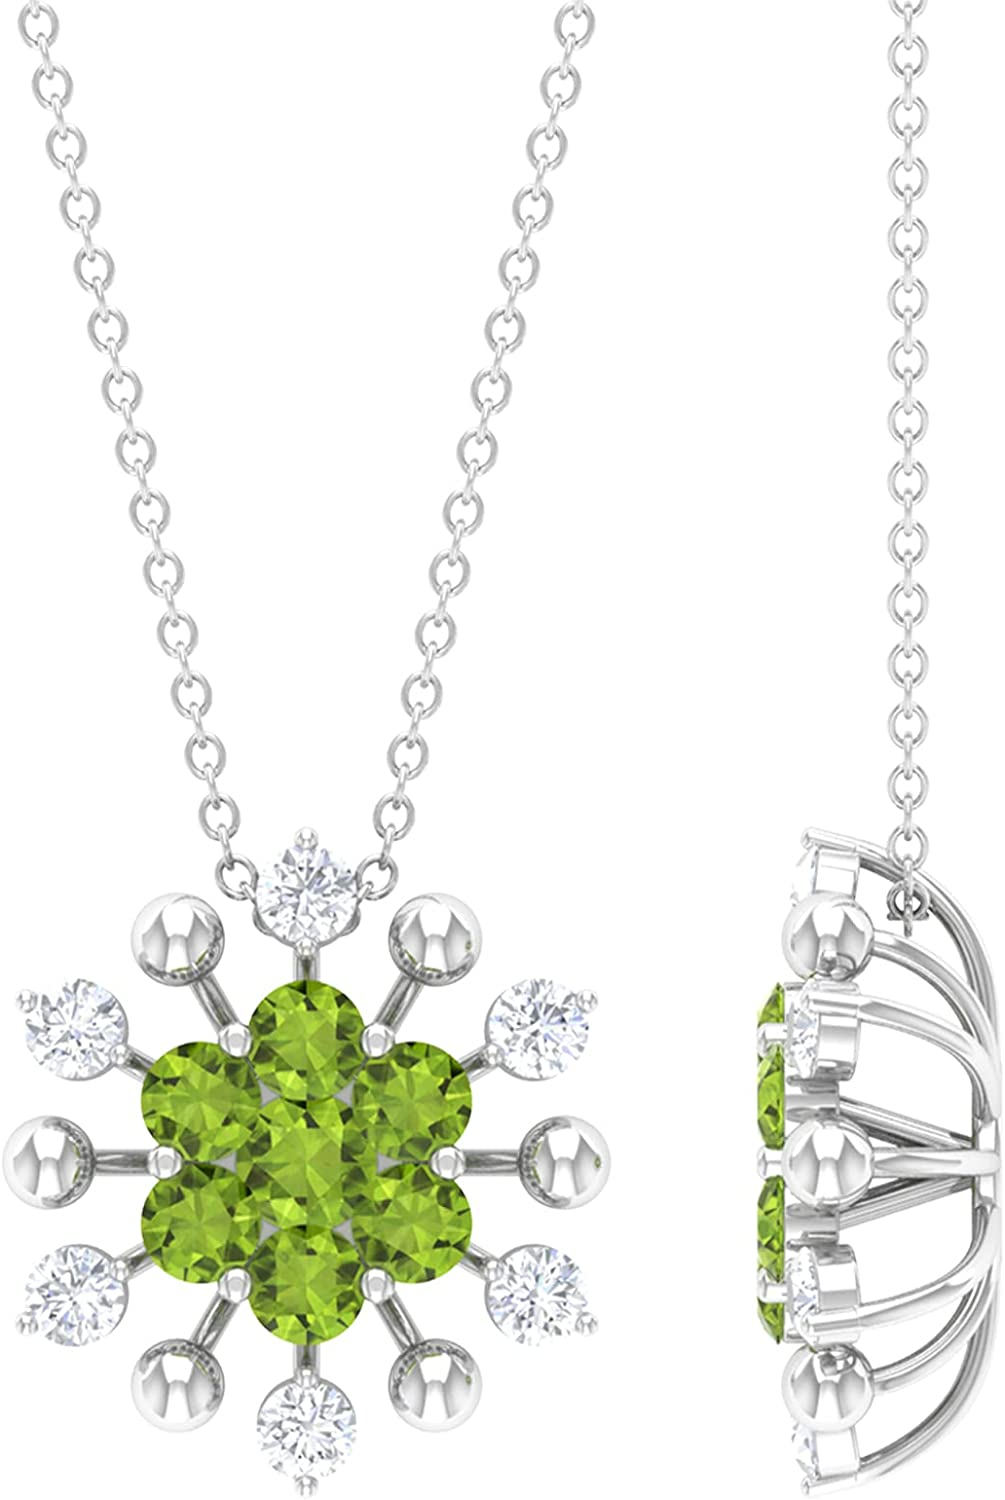 1.25 CT Peridot and Rare Diamond Max 50% OFF Pendant Floral Necklace 14K Cluster